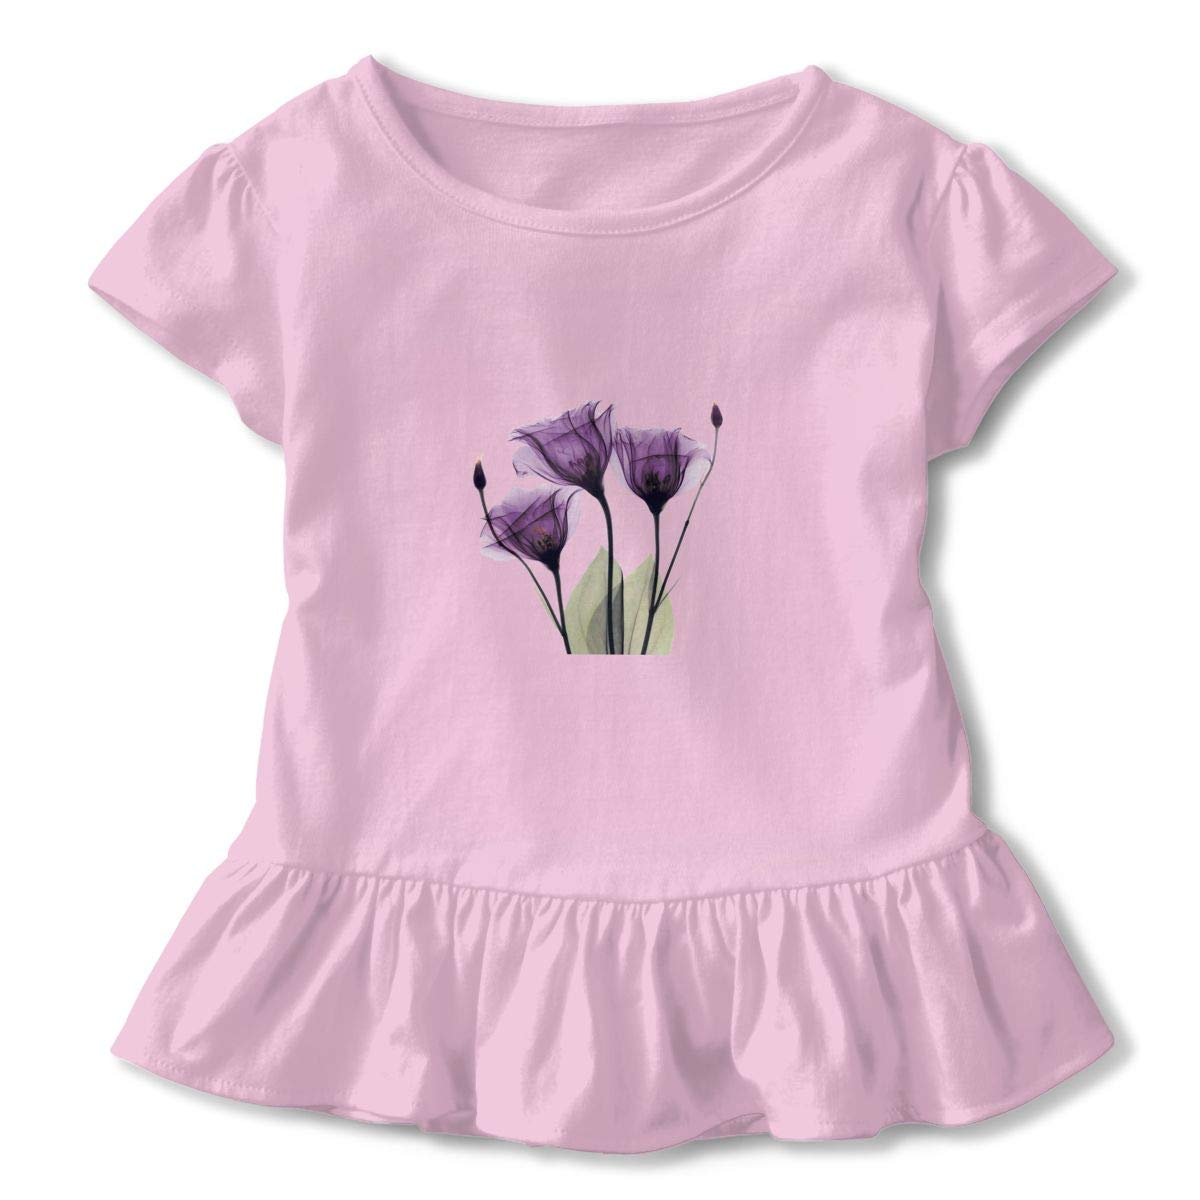 Elegant Tulip Purple Flower Toddler Baby Girl Basic Printed Ruffle Short Sleeve Cotton T Shirts Tops Tee Clothes